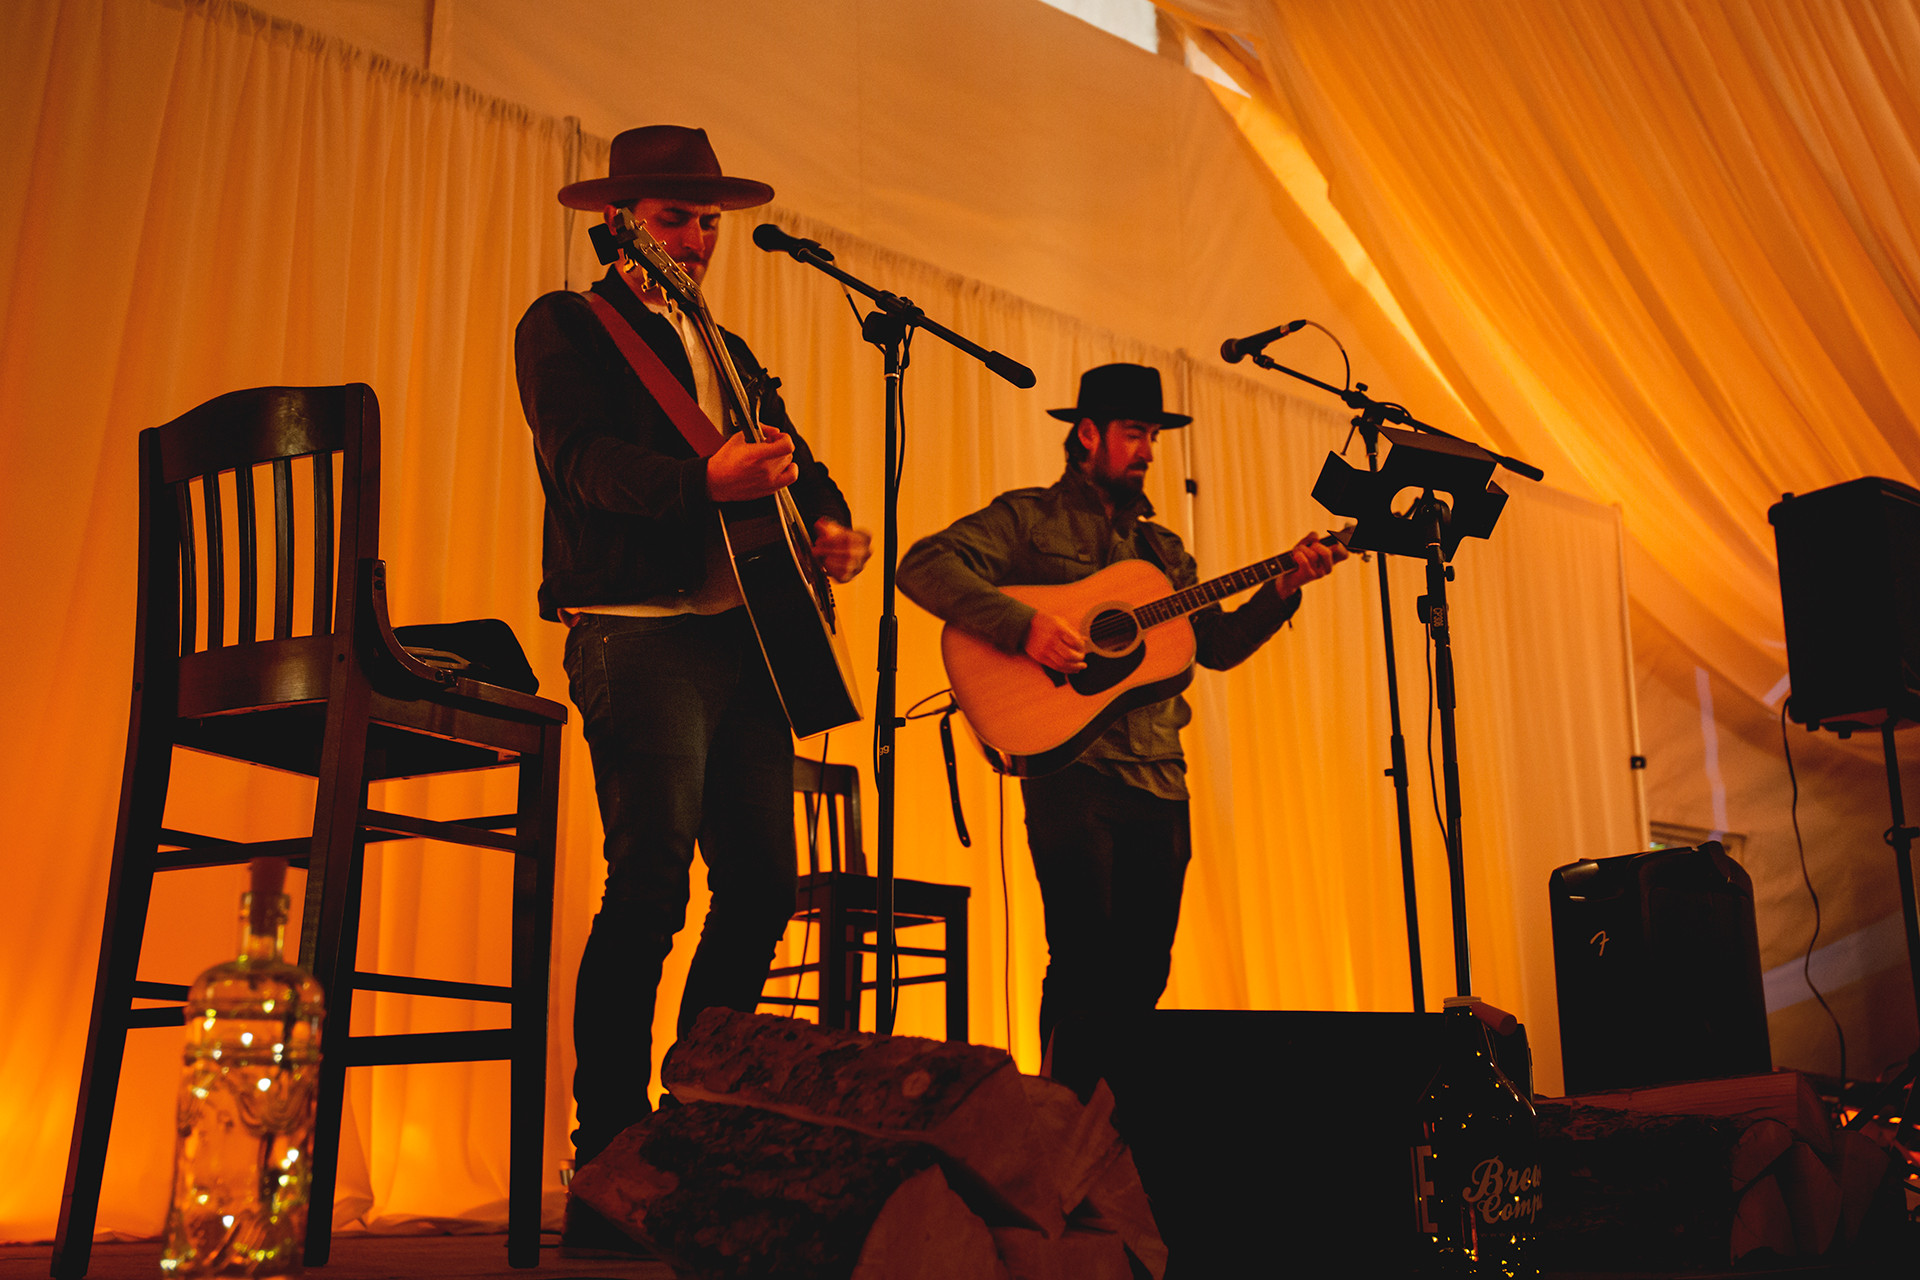 Talbott Brothers Evening Show